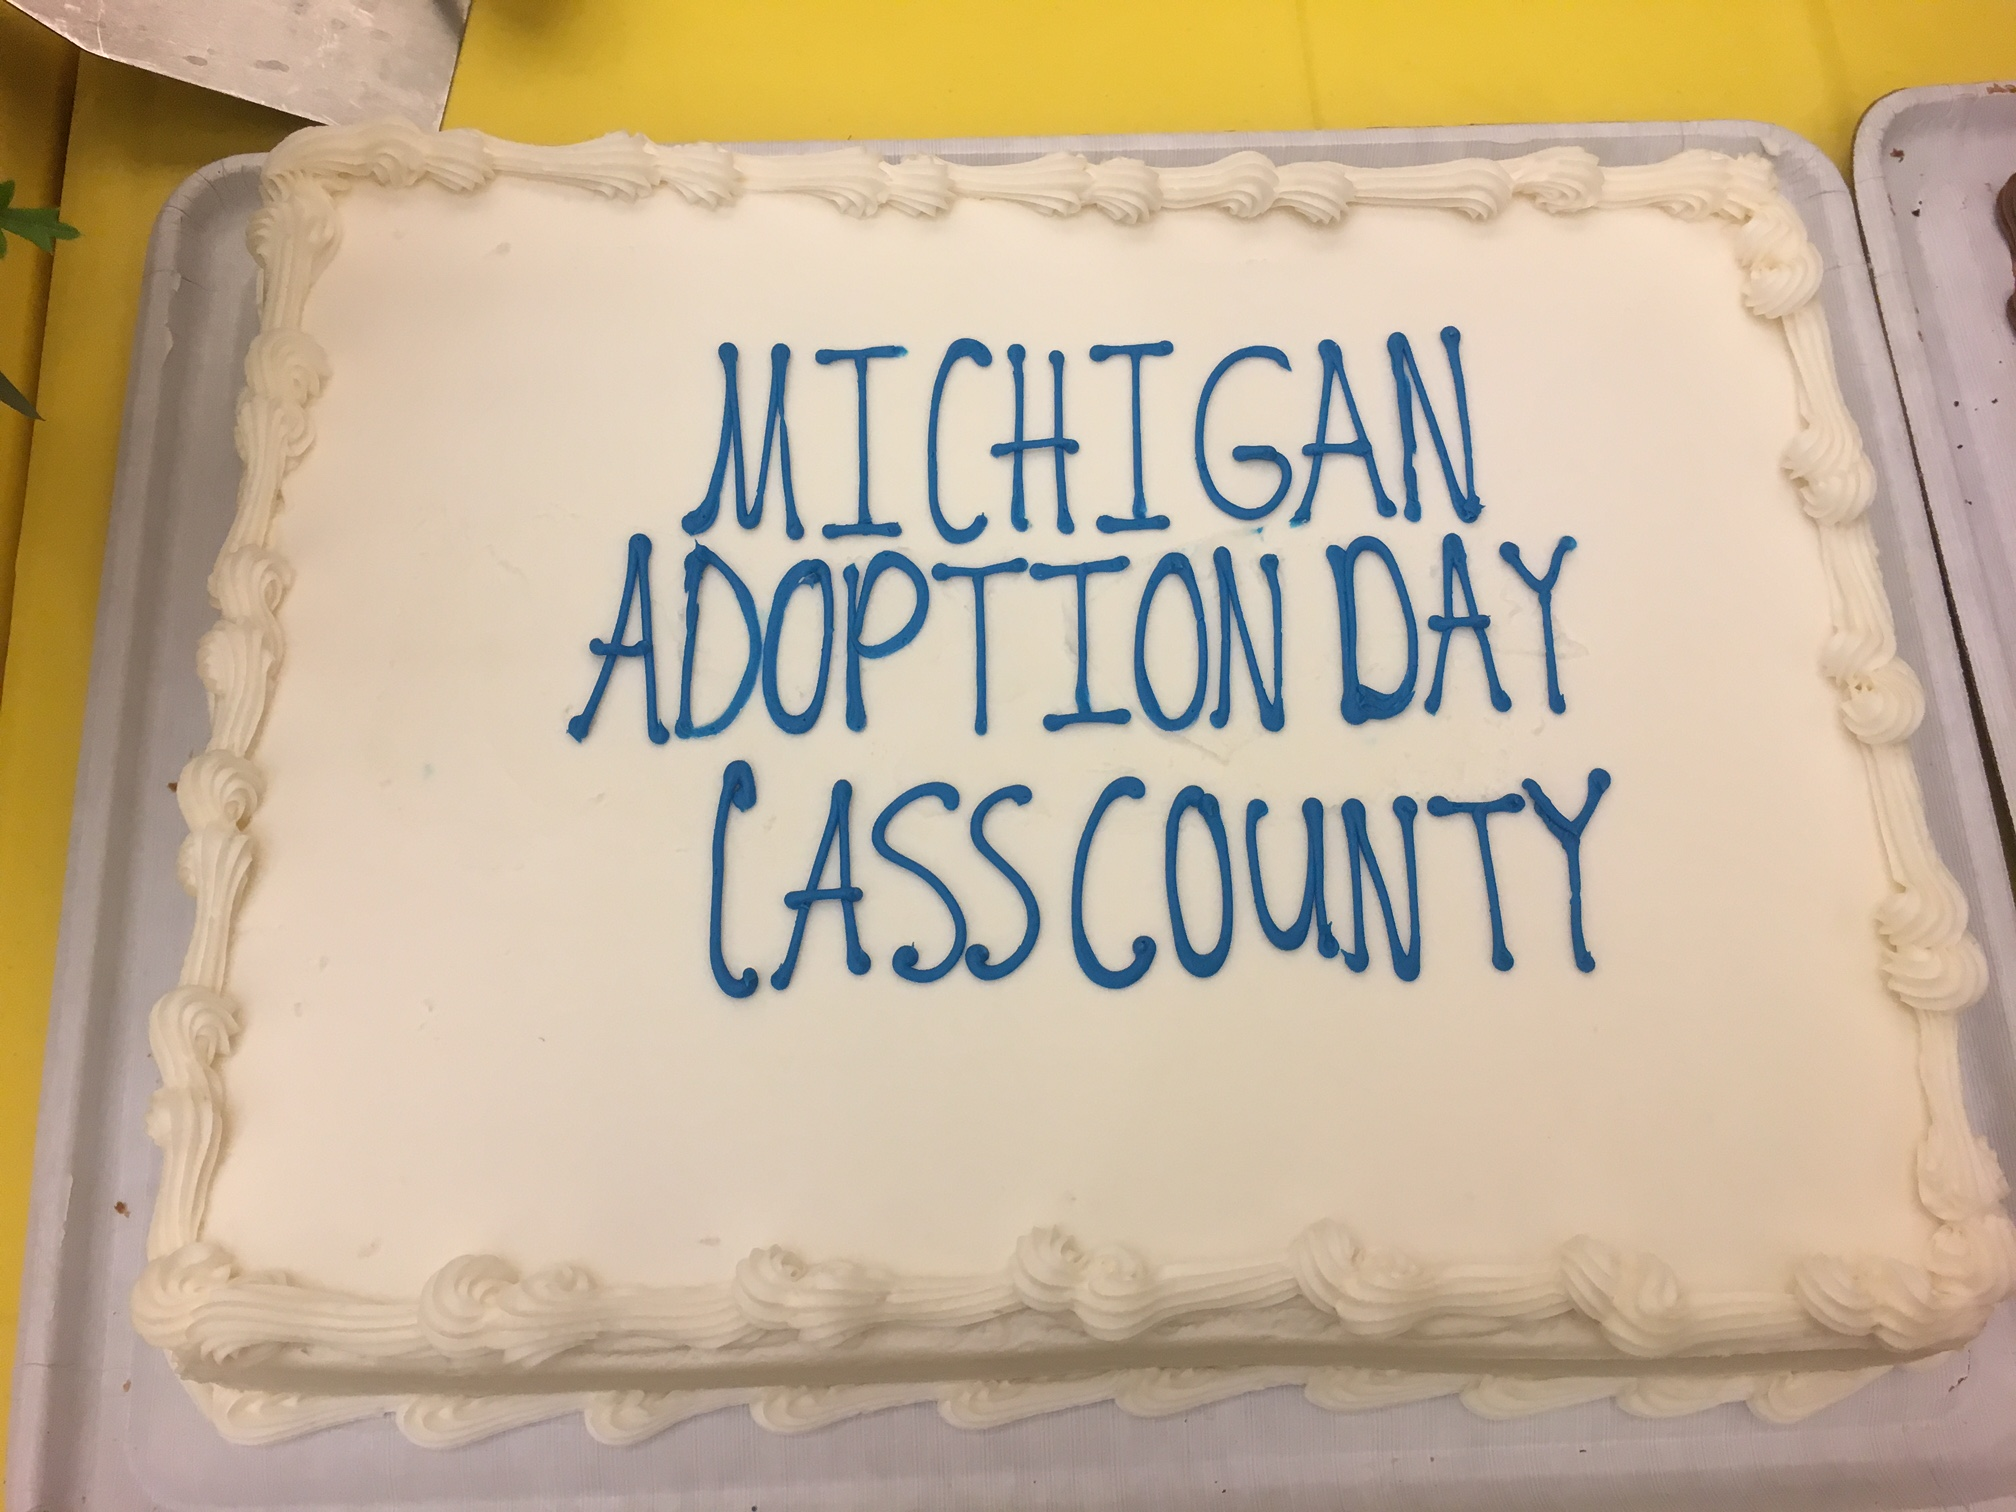 Cass County MI 15th Annual Adoption Day